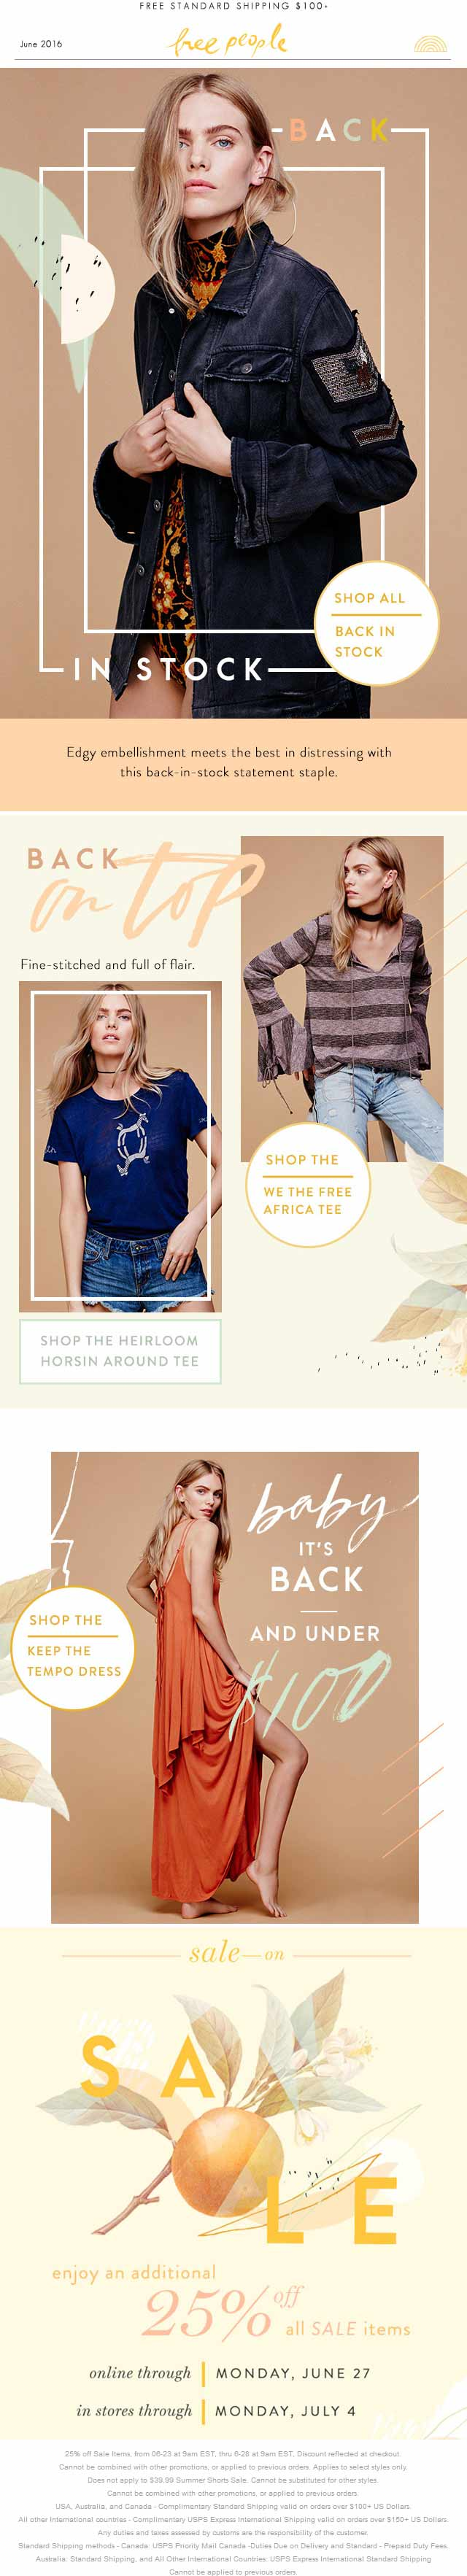 Free People Coupon October 2016 Extra 25% off sale items at Free People, ditto online